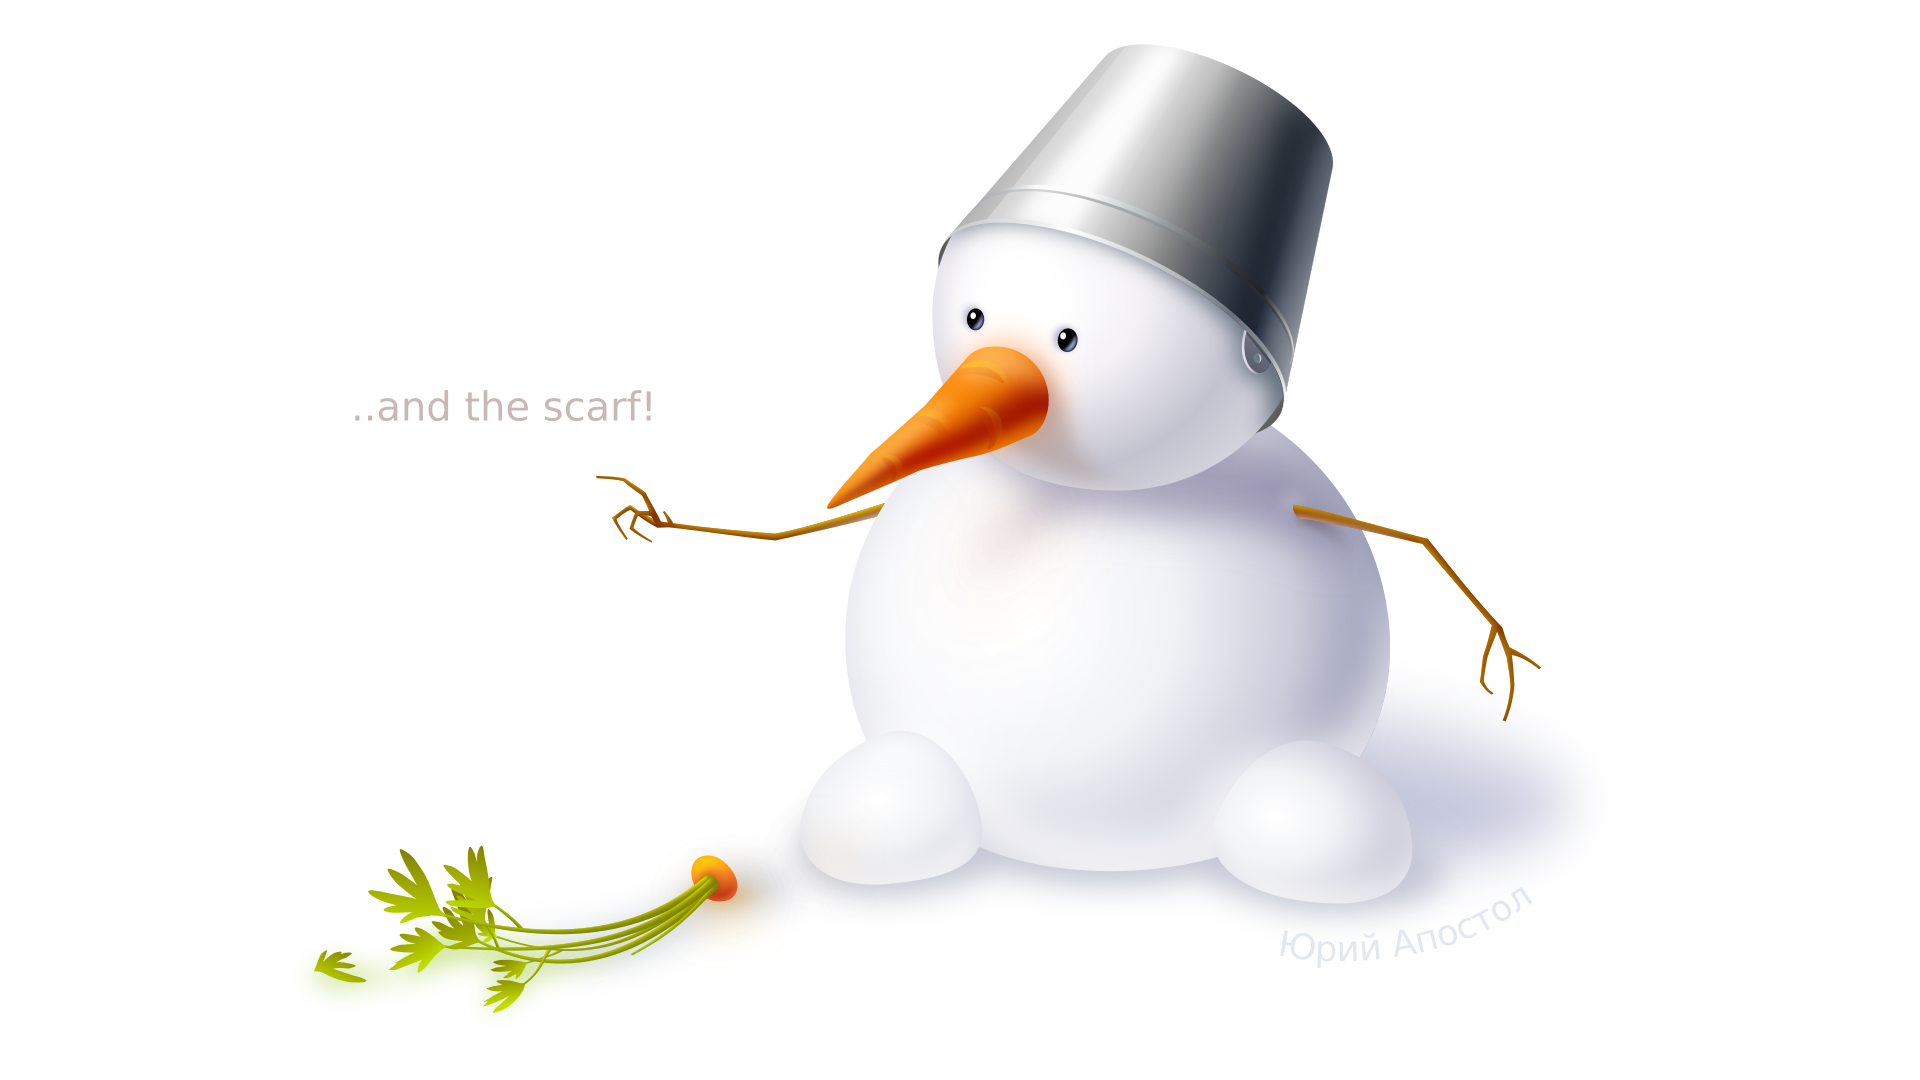 How to draw a snowman with Inkscape